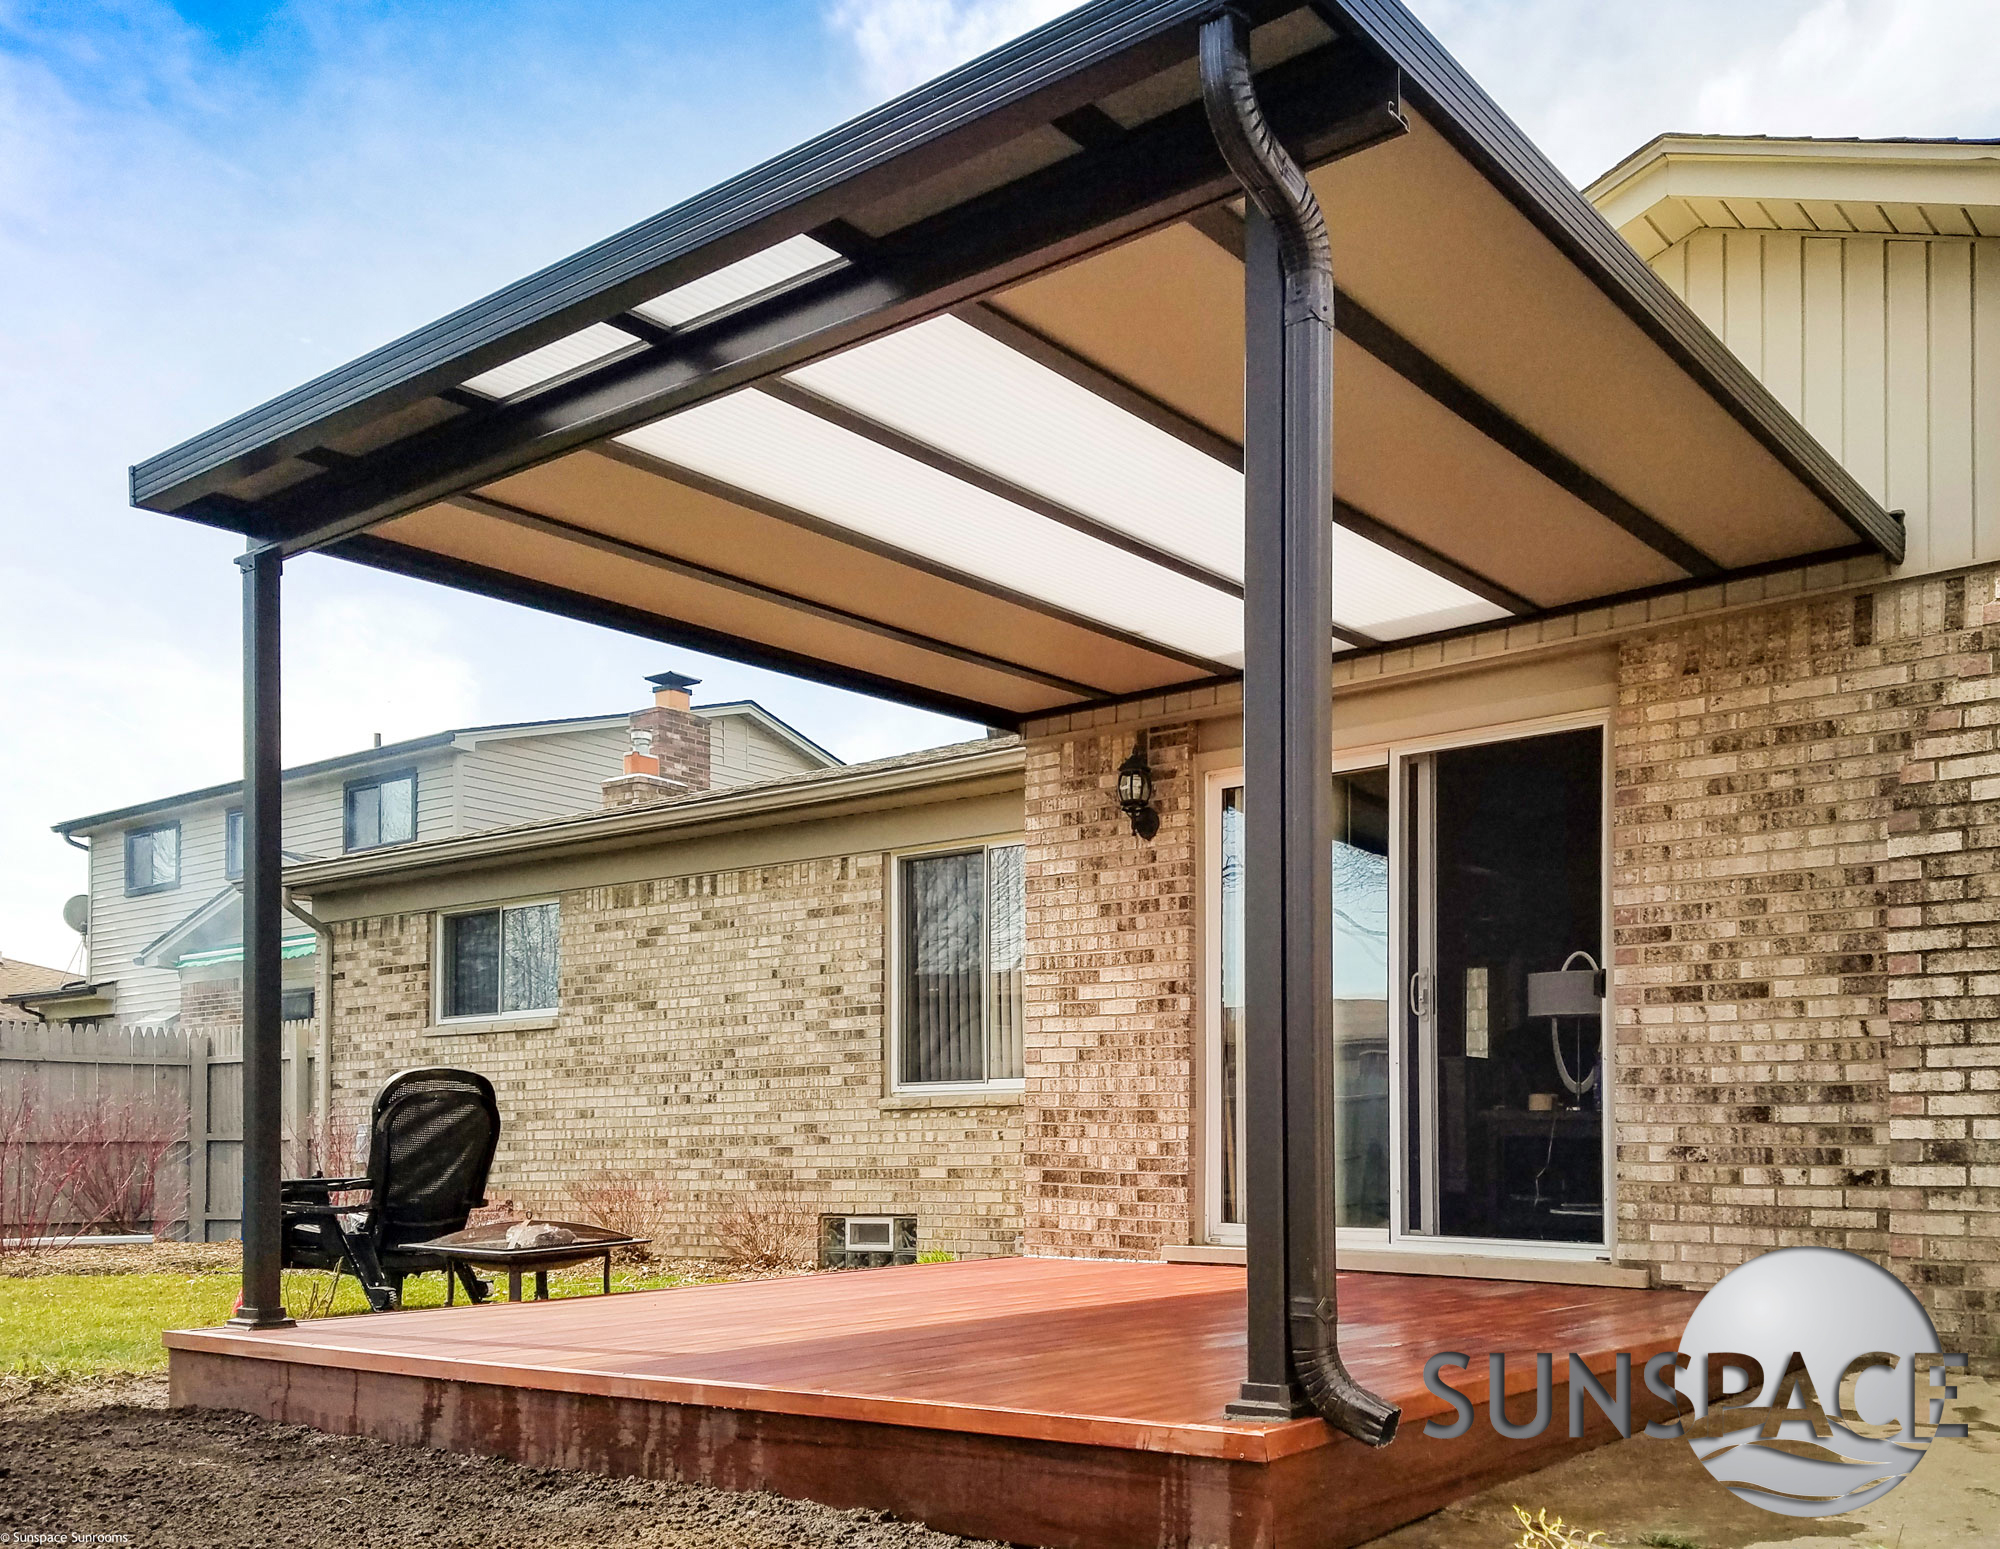 sunspace sunrooms patio covers